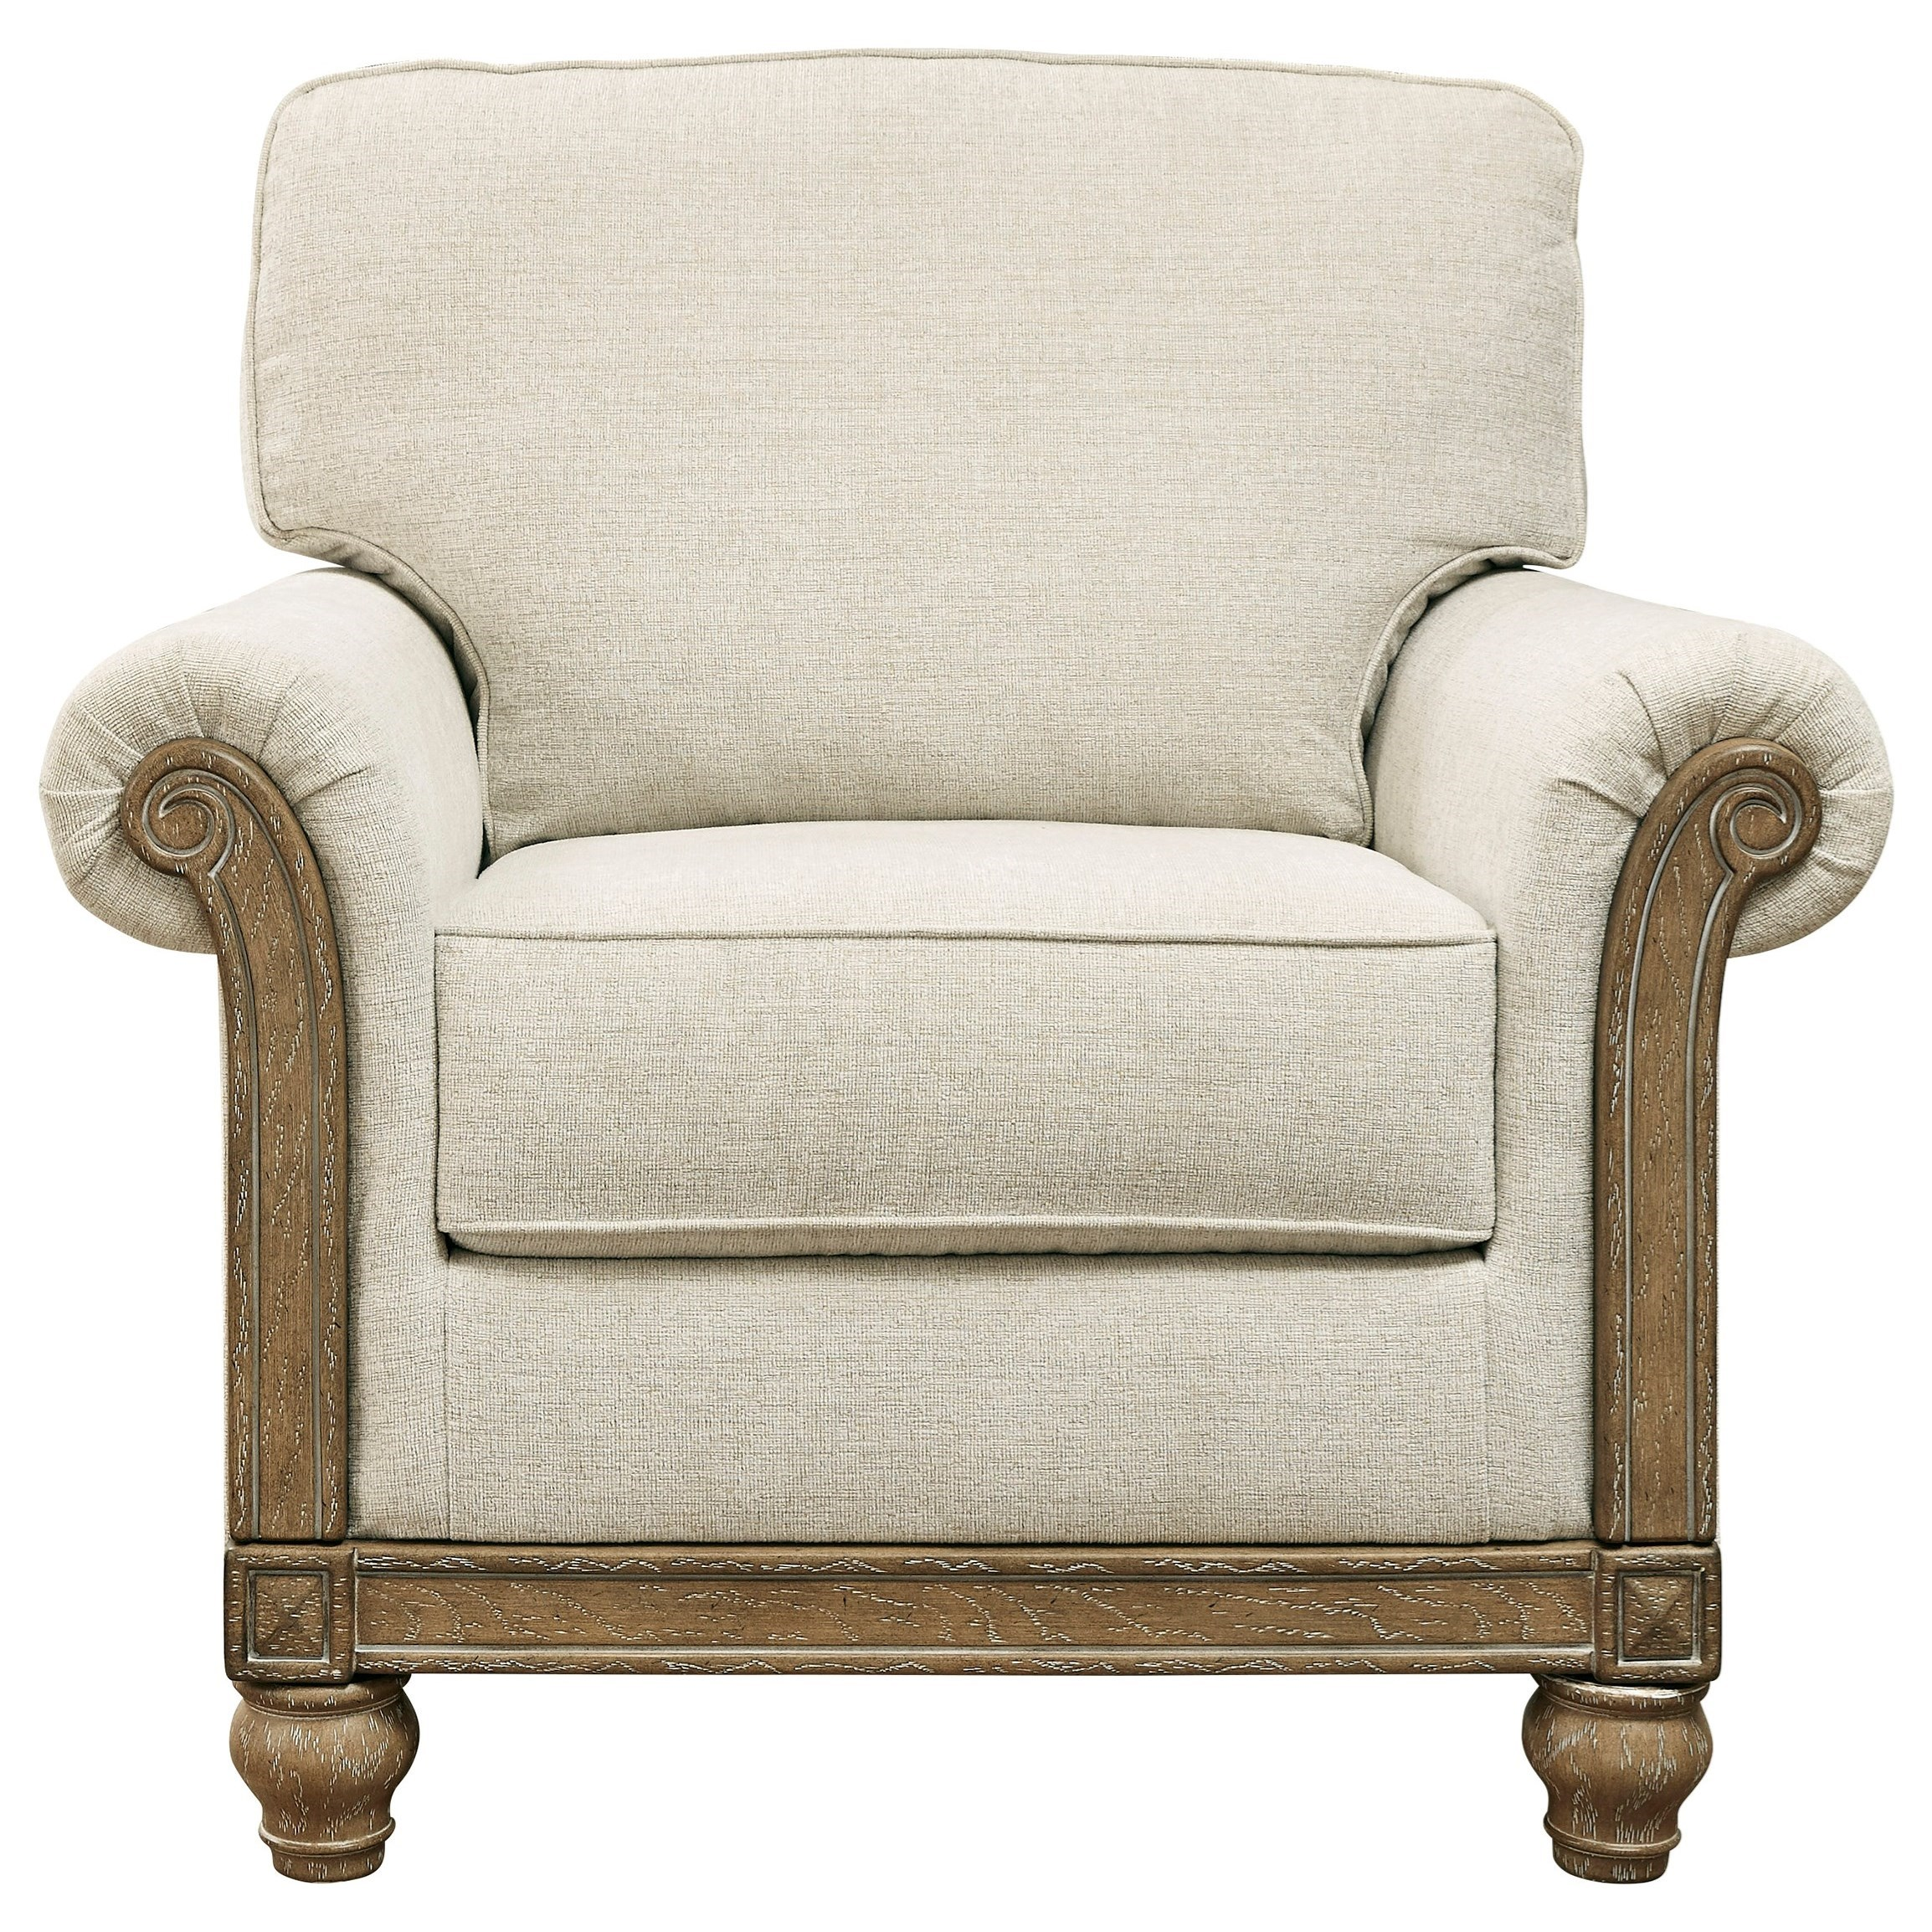 Stoneleigh  Upholstered Chair  by Benchcraft at Beck's Furniture